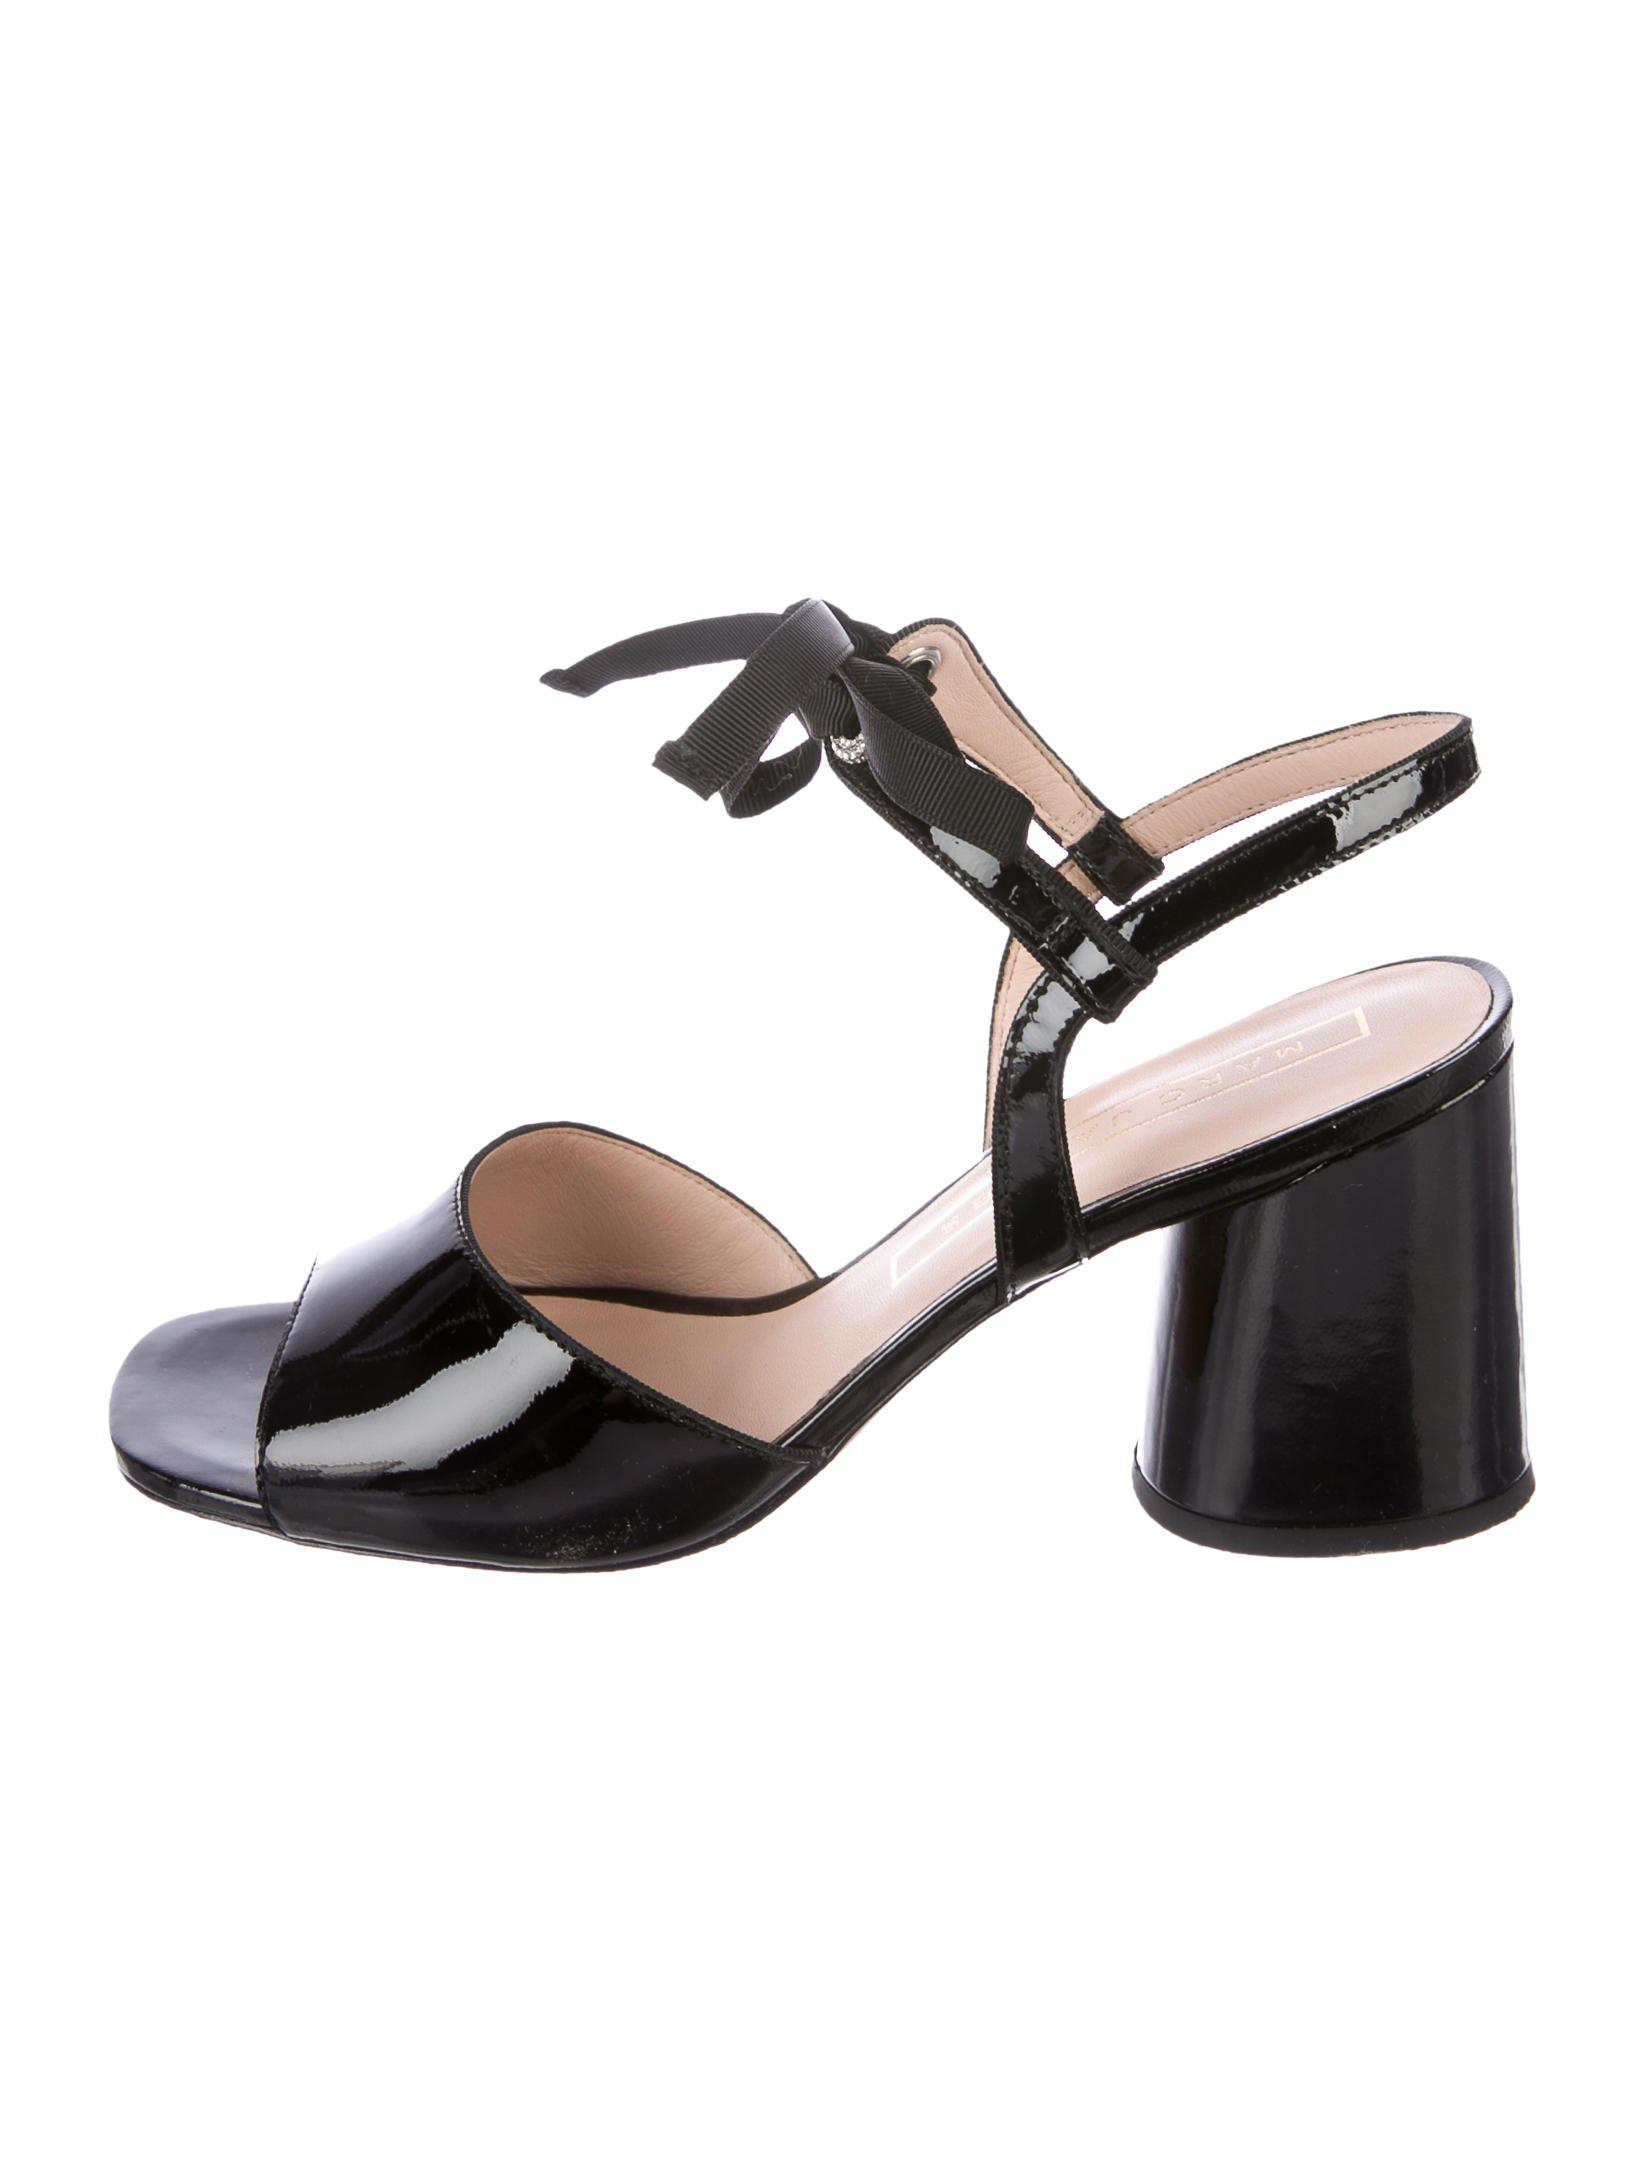 outlet visit discount limited edition Marc Jacobs Patent Leather Ankle Strap Sandals prices for sale clearance genuine Cfb6XCT17V